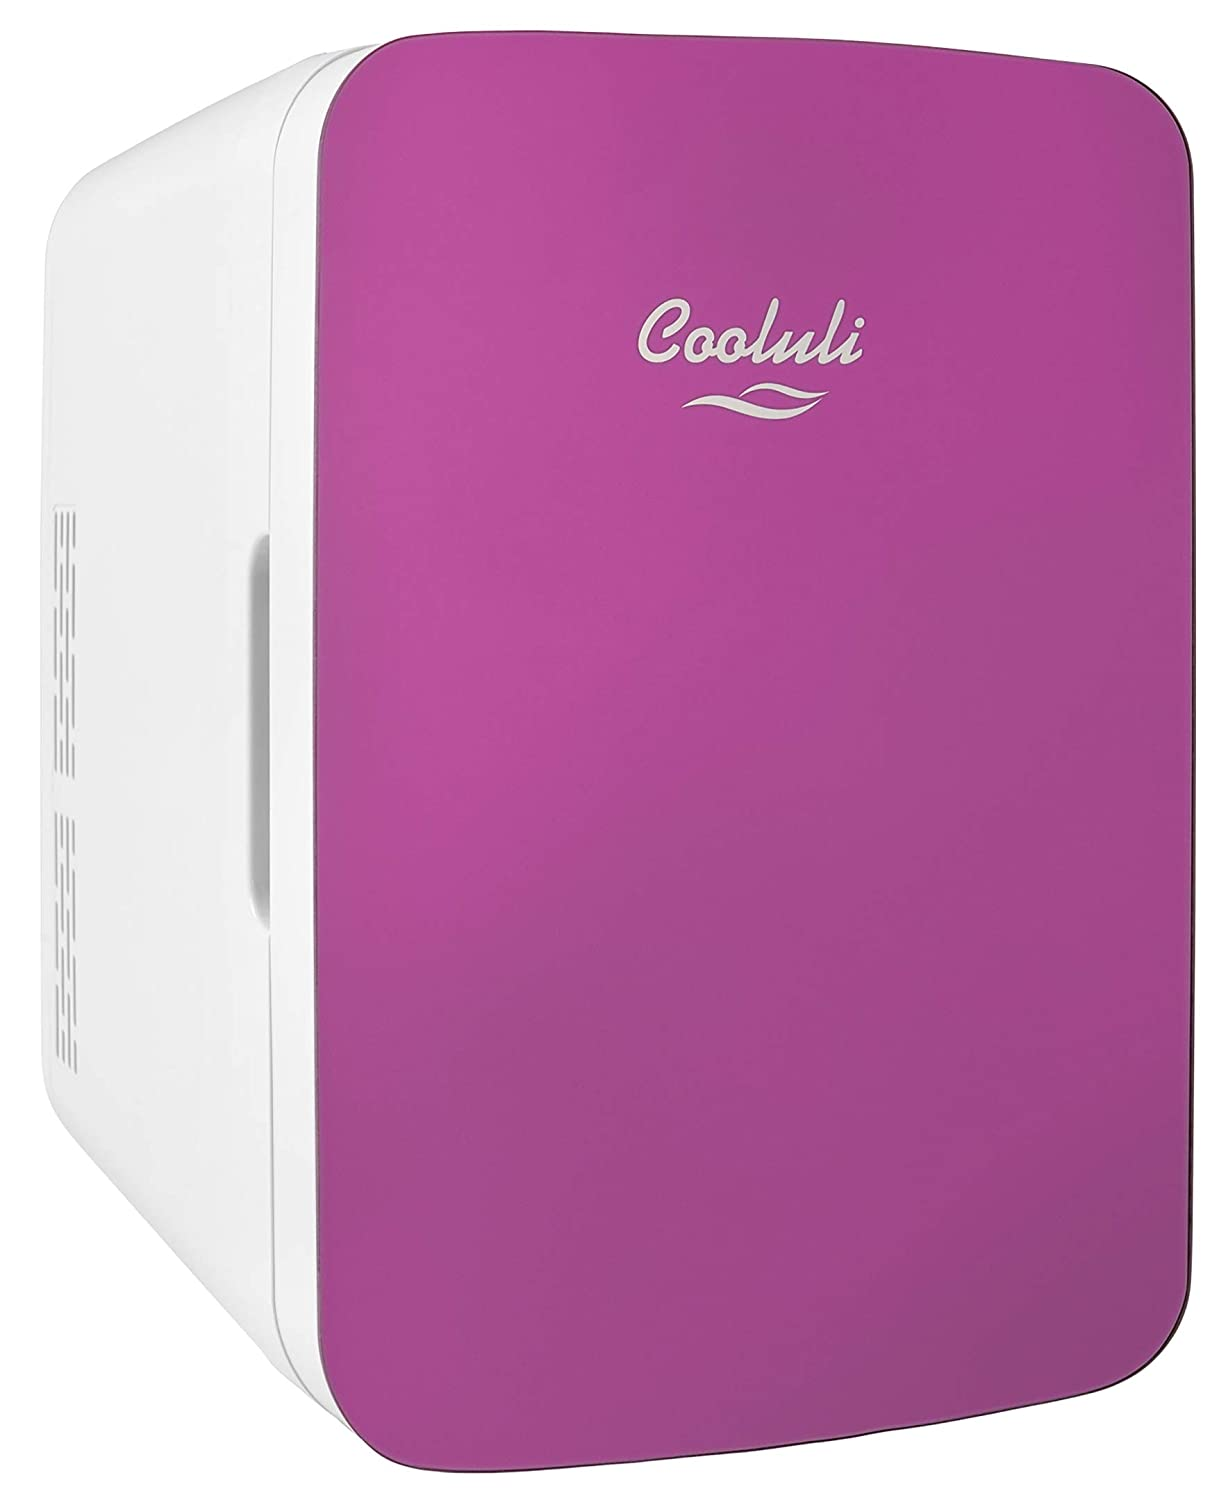 Cooluli Infinity Pink 10 Liter Compact Portable Cooler Warmer Mini Fridge for Bedroom, Office, Dorm, Car - Great for Skincare & Cosmetics (110-240V/12V)